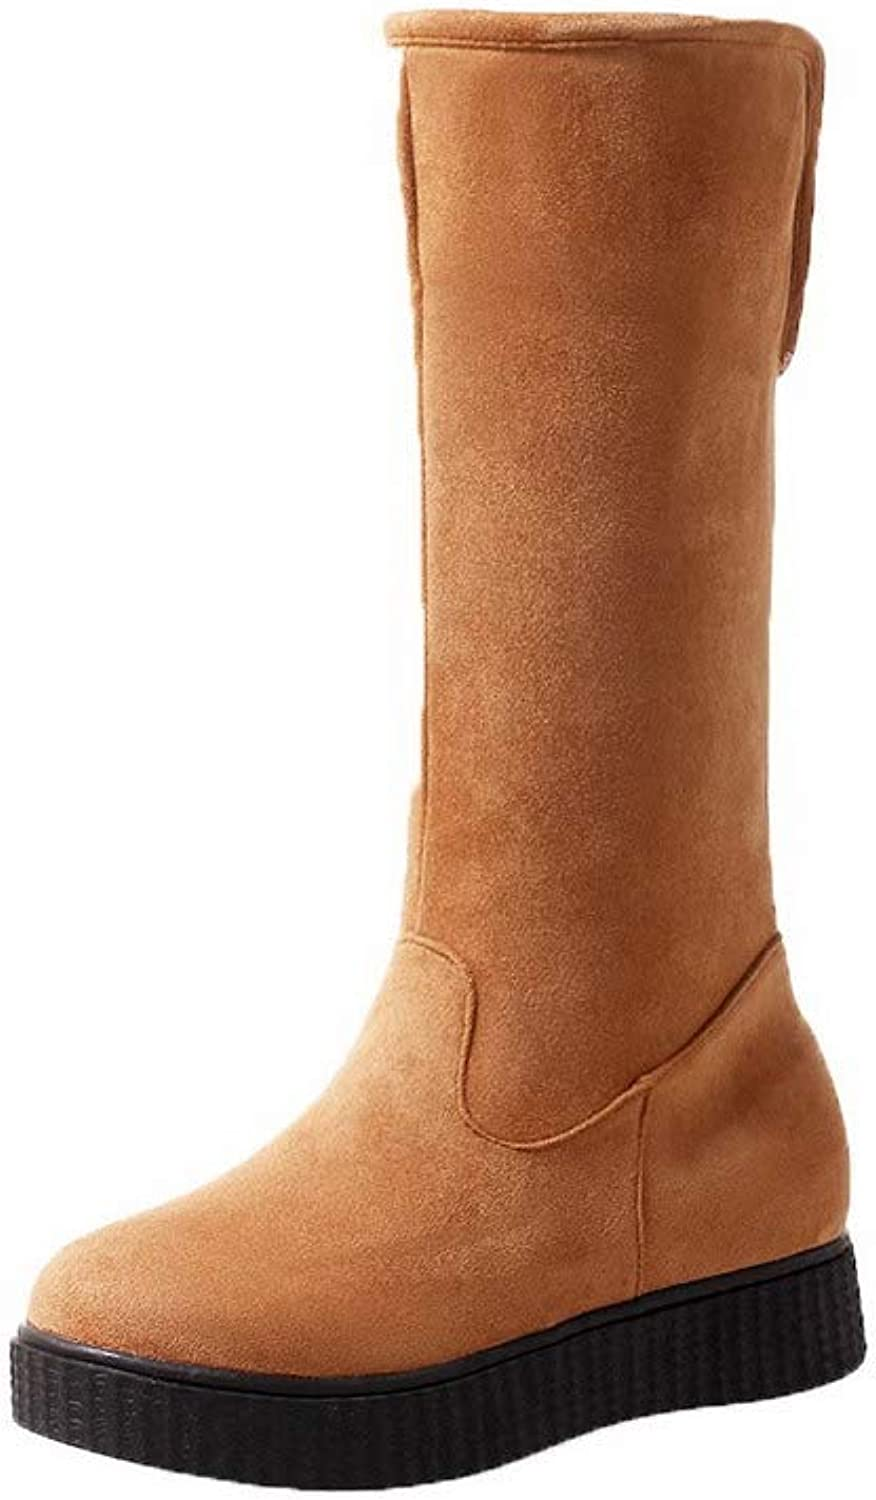 AmoonyFashion Women's Round-Toe Low-Top Low-Heels Solid Imitated Suede Boots, BUSXT128154